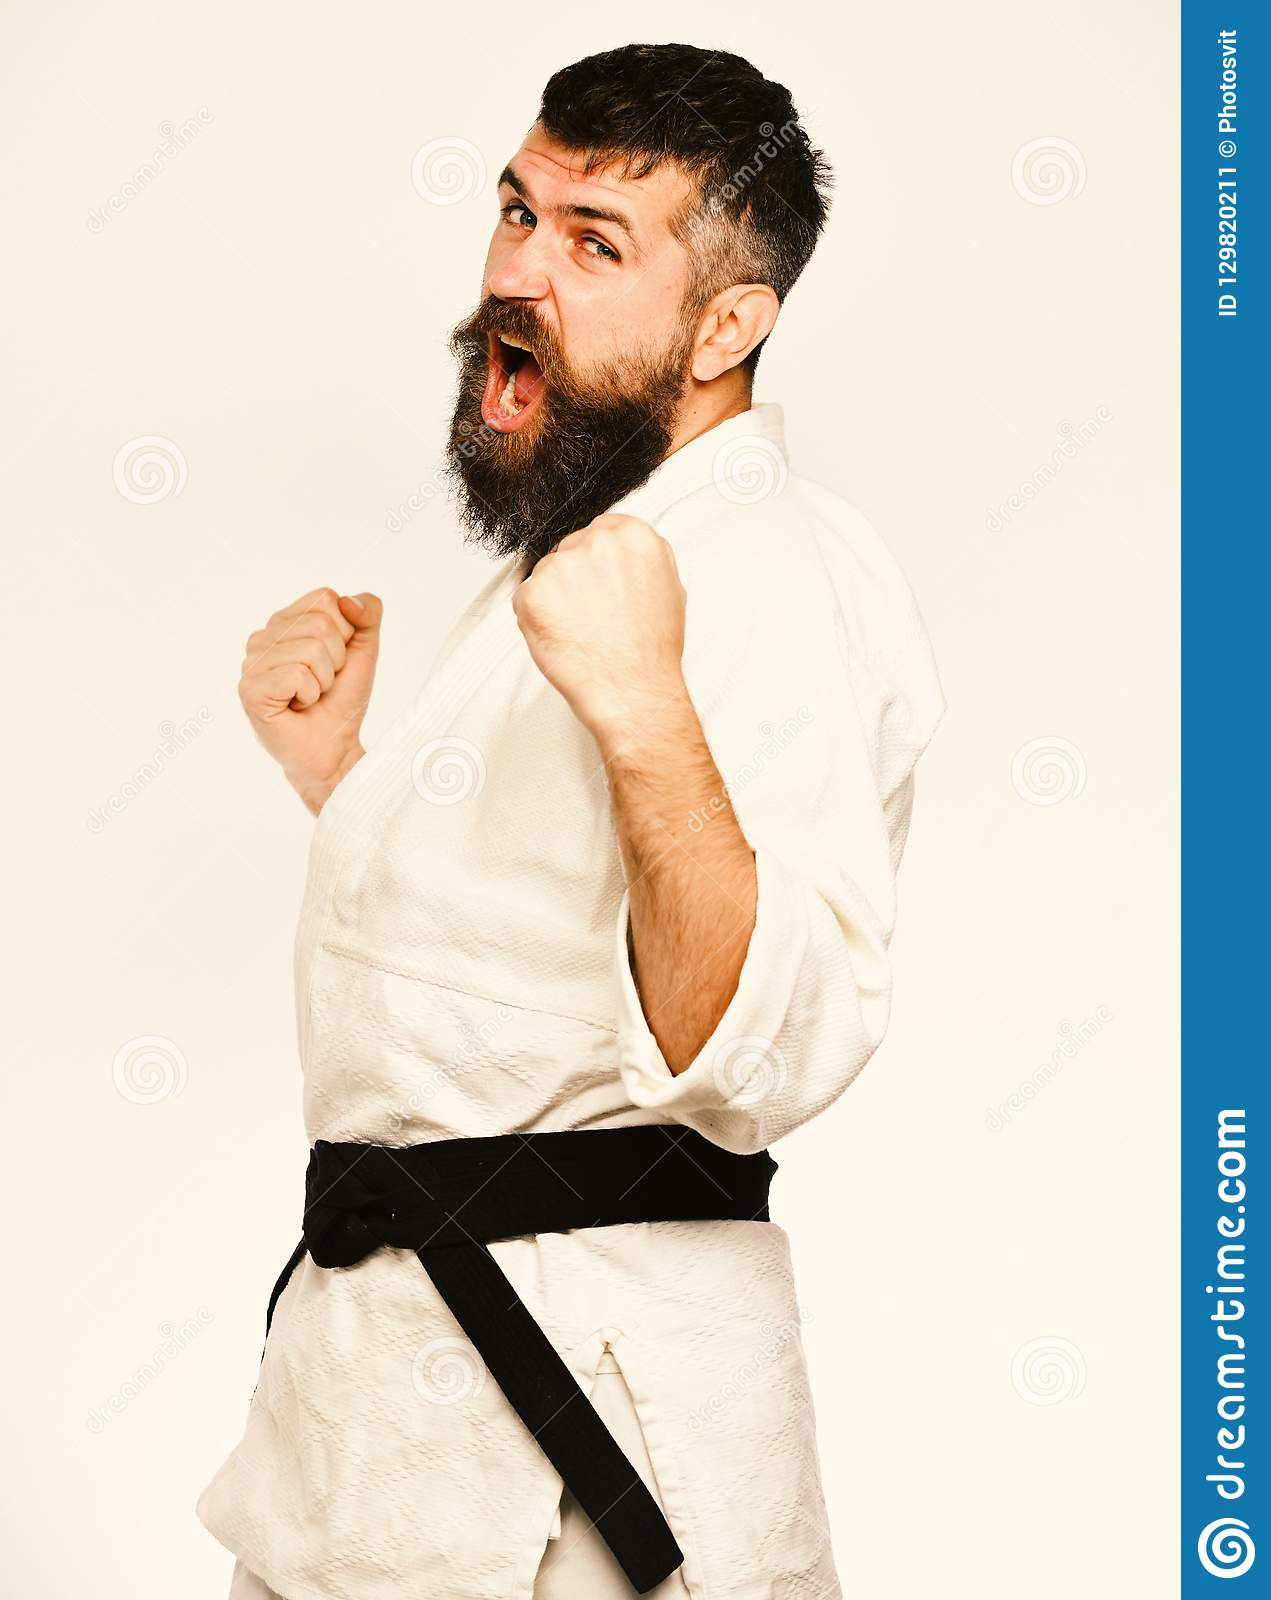 Karate man with angry face in uniform. Man with beard